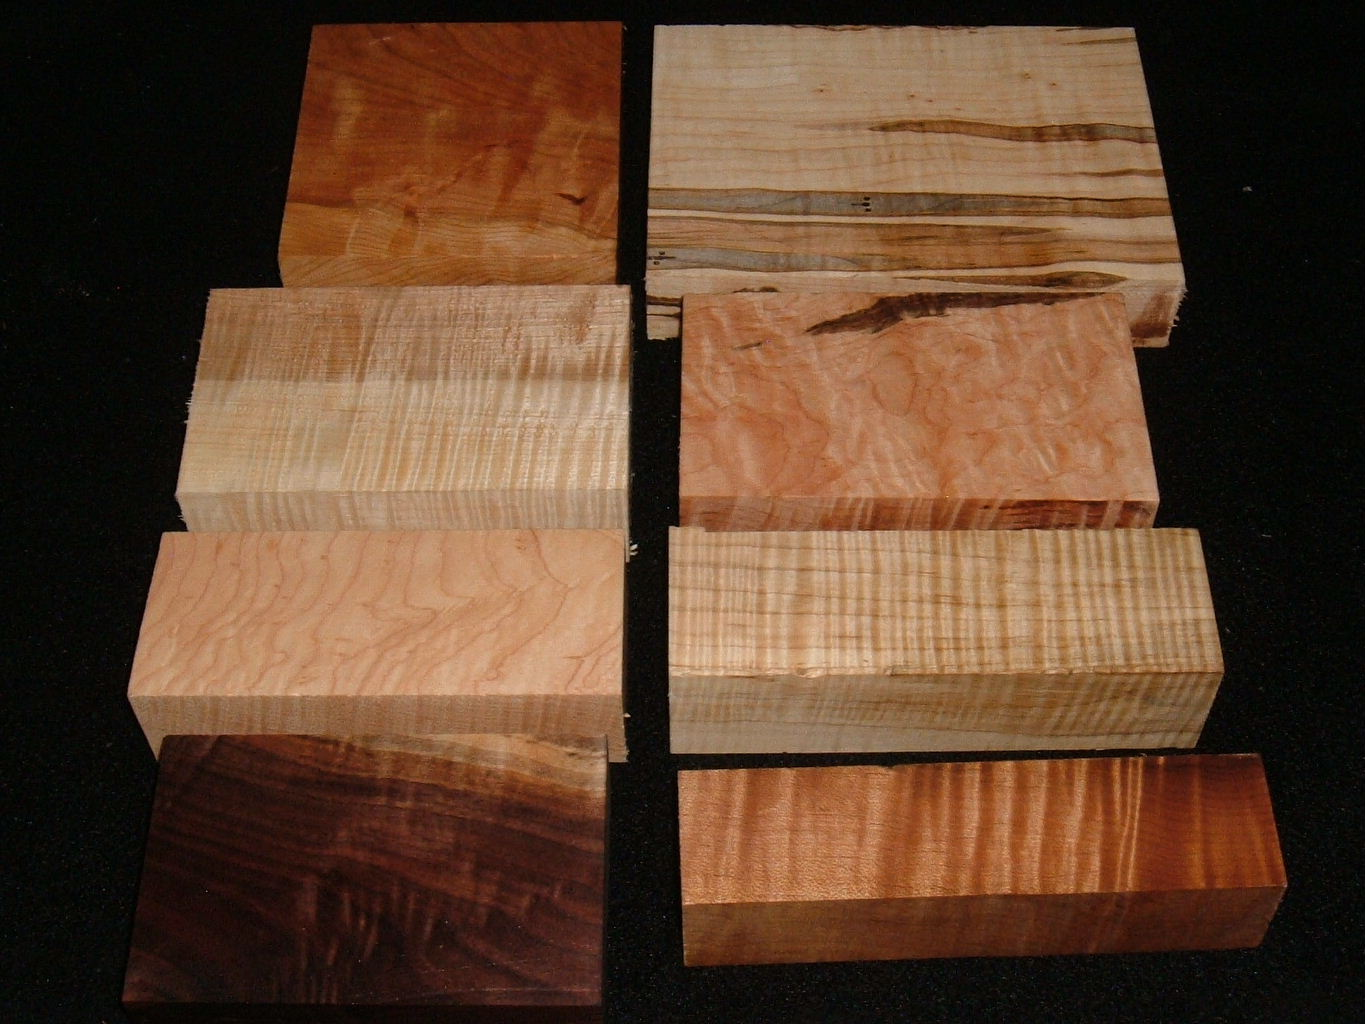 HP-2458, Variety of 8/4 Figured Hardwoods,Lumber Craft Board Hobby Pack